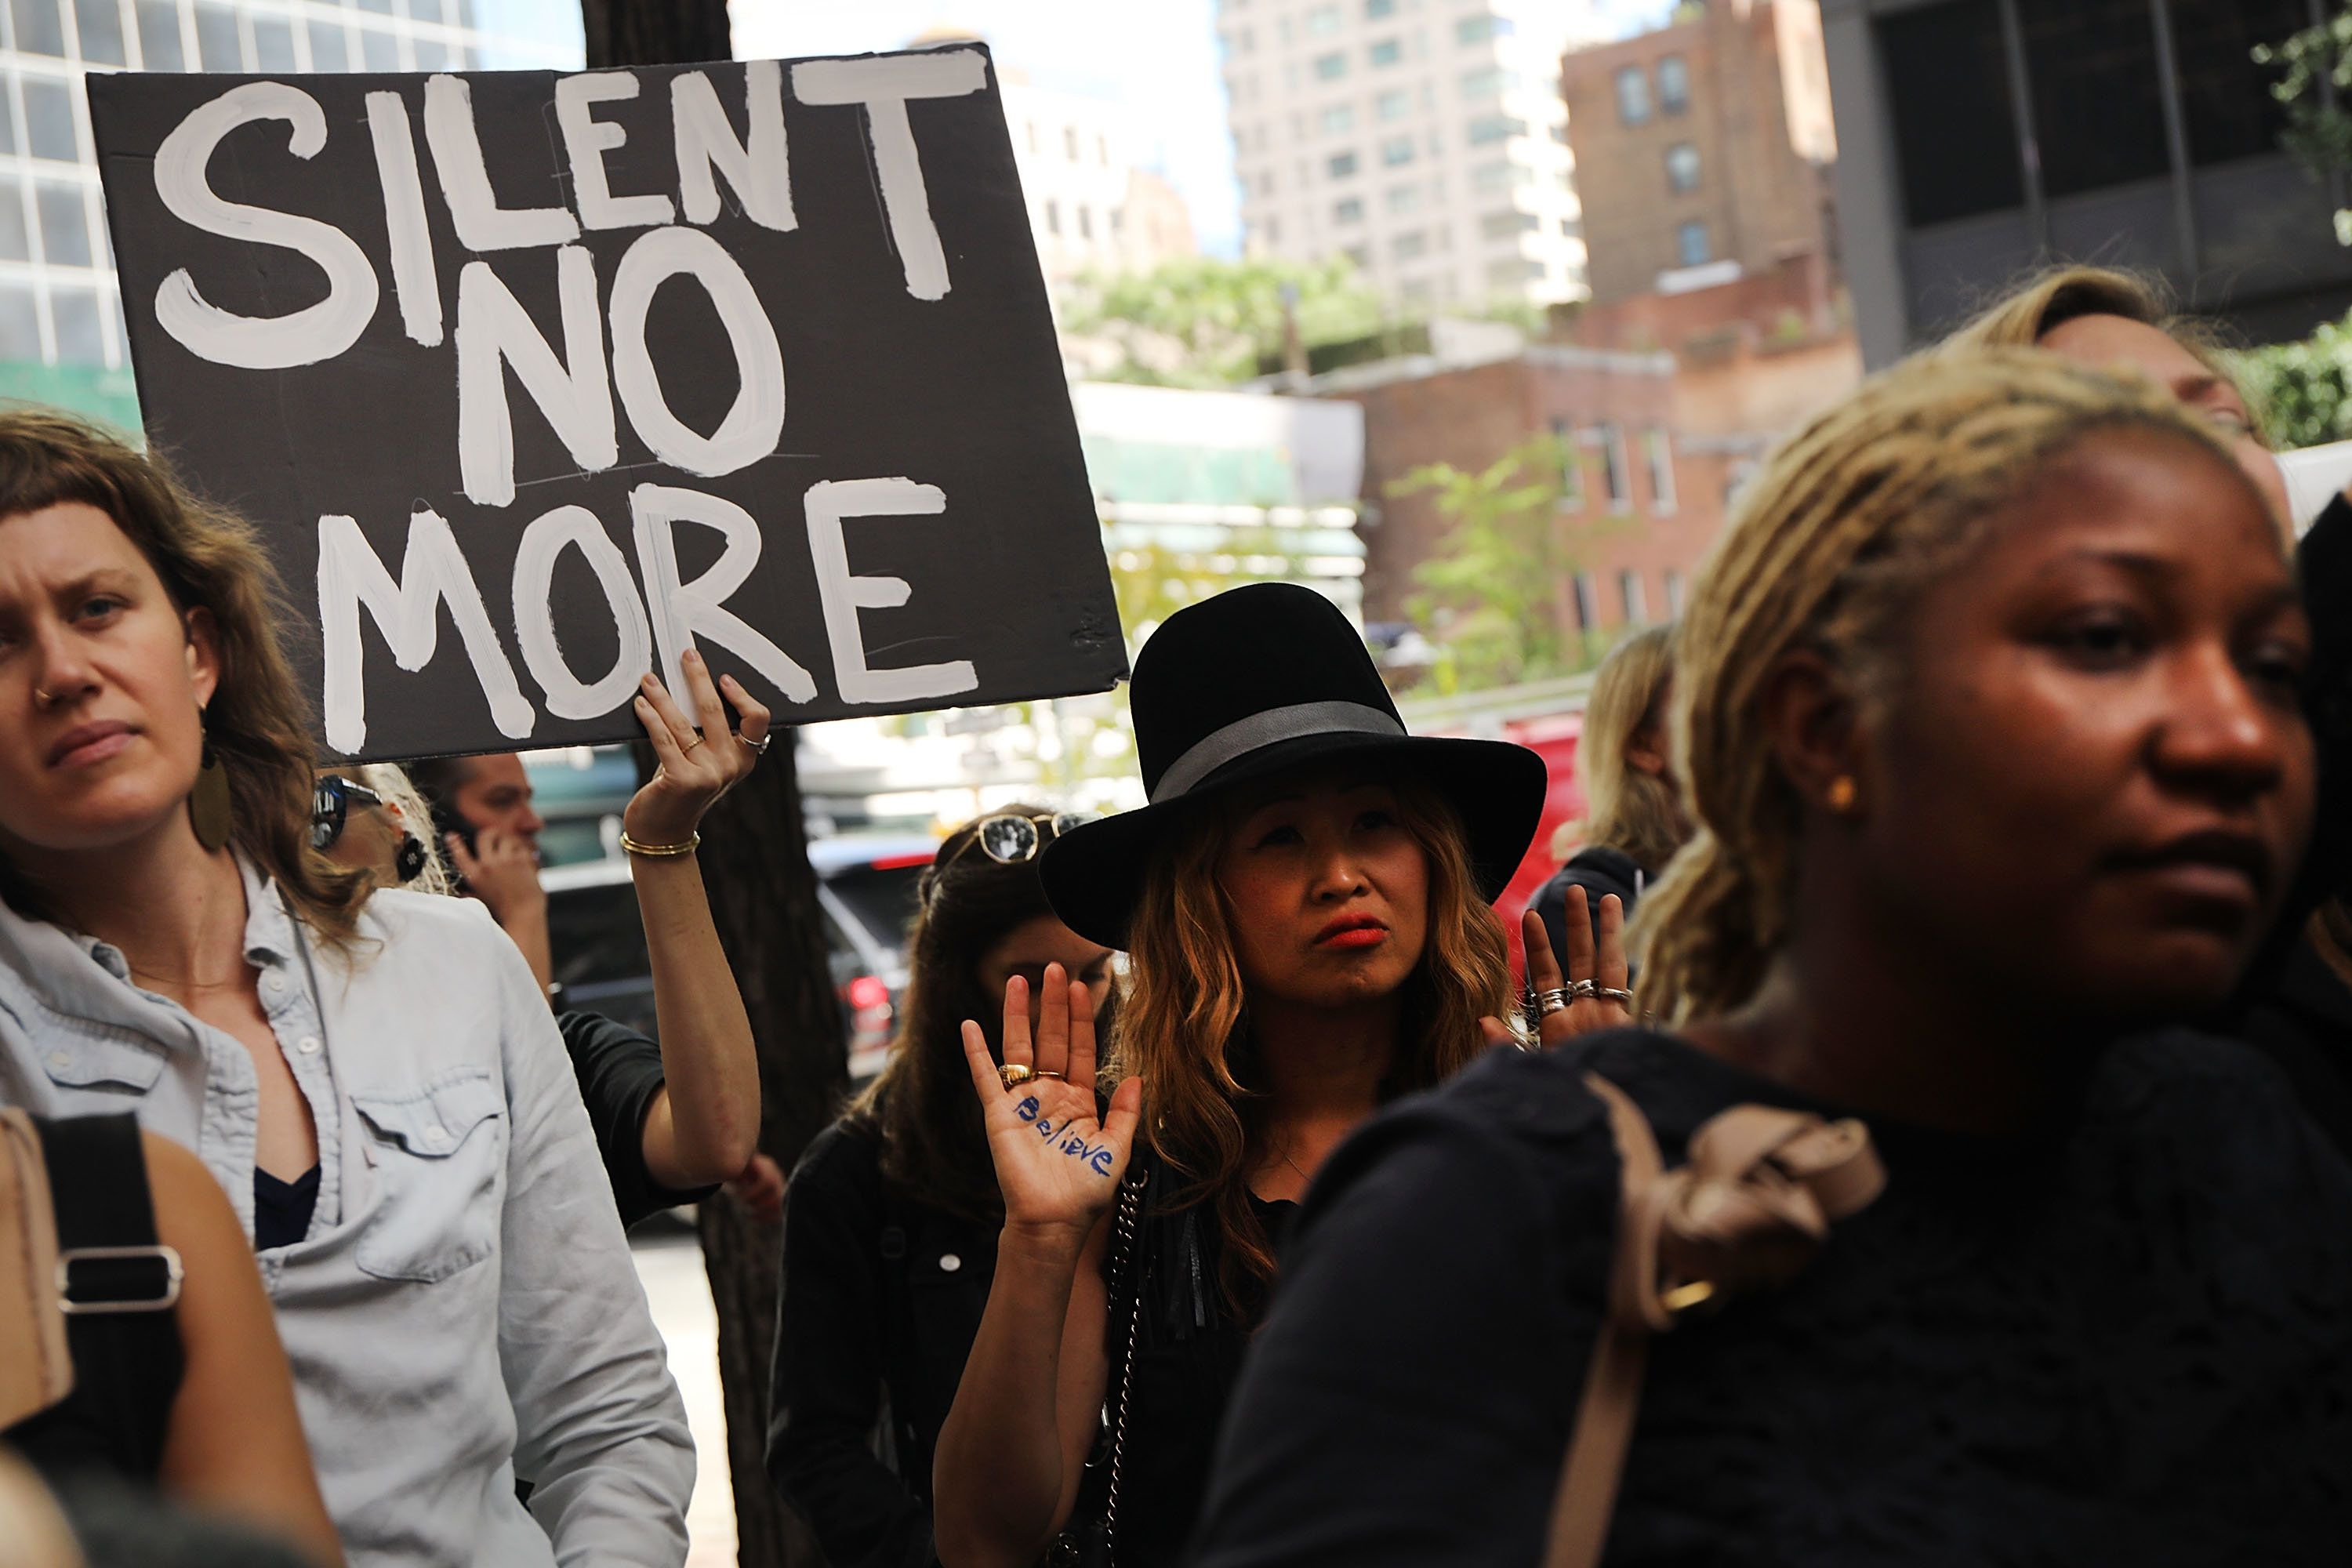 Dozens of protesters against the confirmation of Supreme Court nominee Brett Kavanaugh gather outside the New York office of Democratic Sen. Chuck Schumer on the afternoon that Christine Blasey Ford testified about her allegations of sexual assault against Kavanaugh on Sept. 27, 2018.